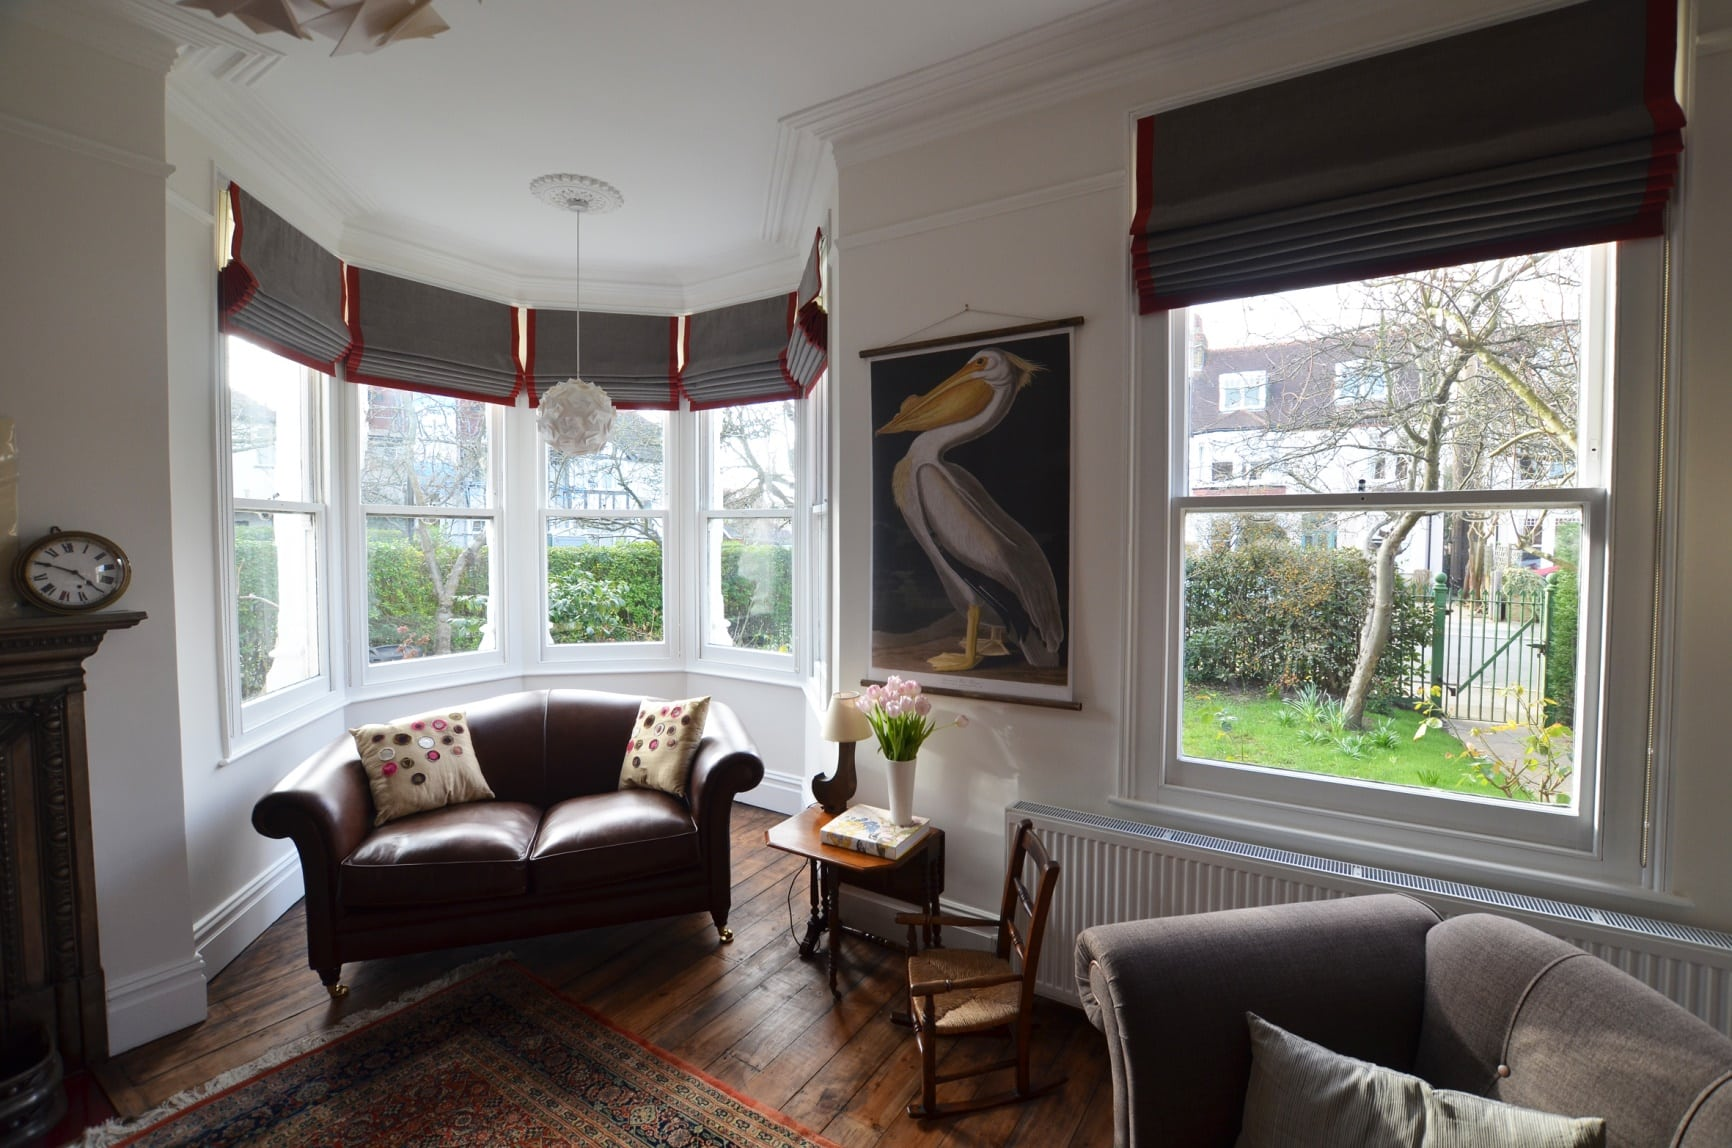 Designer roman blinds in a bay window